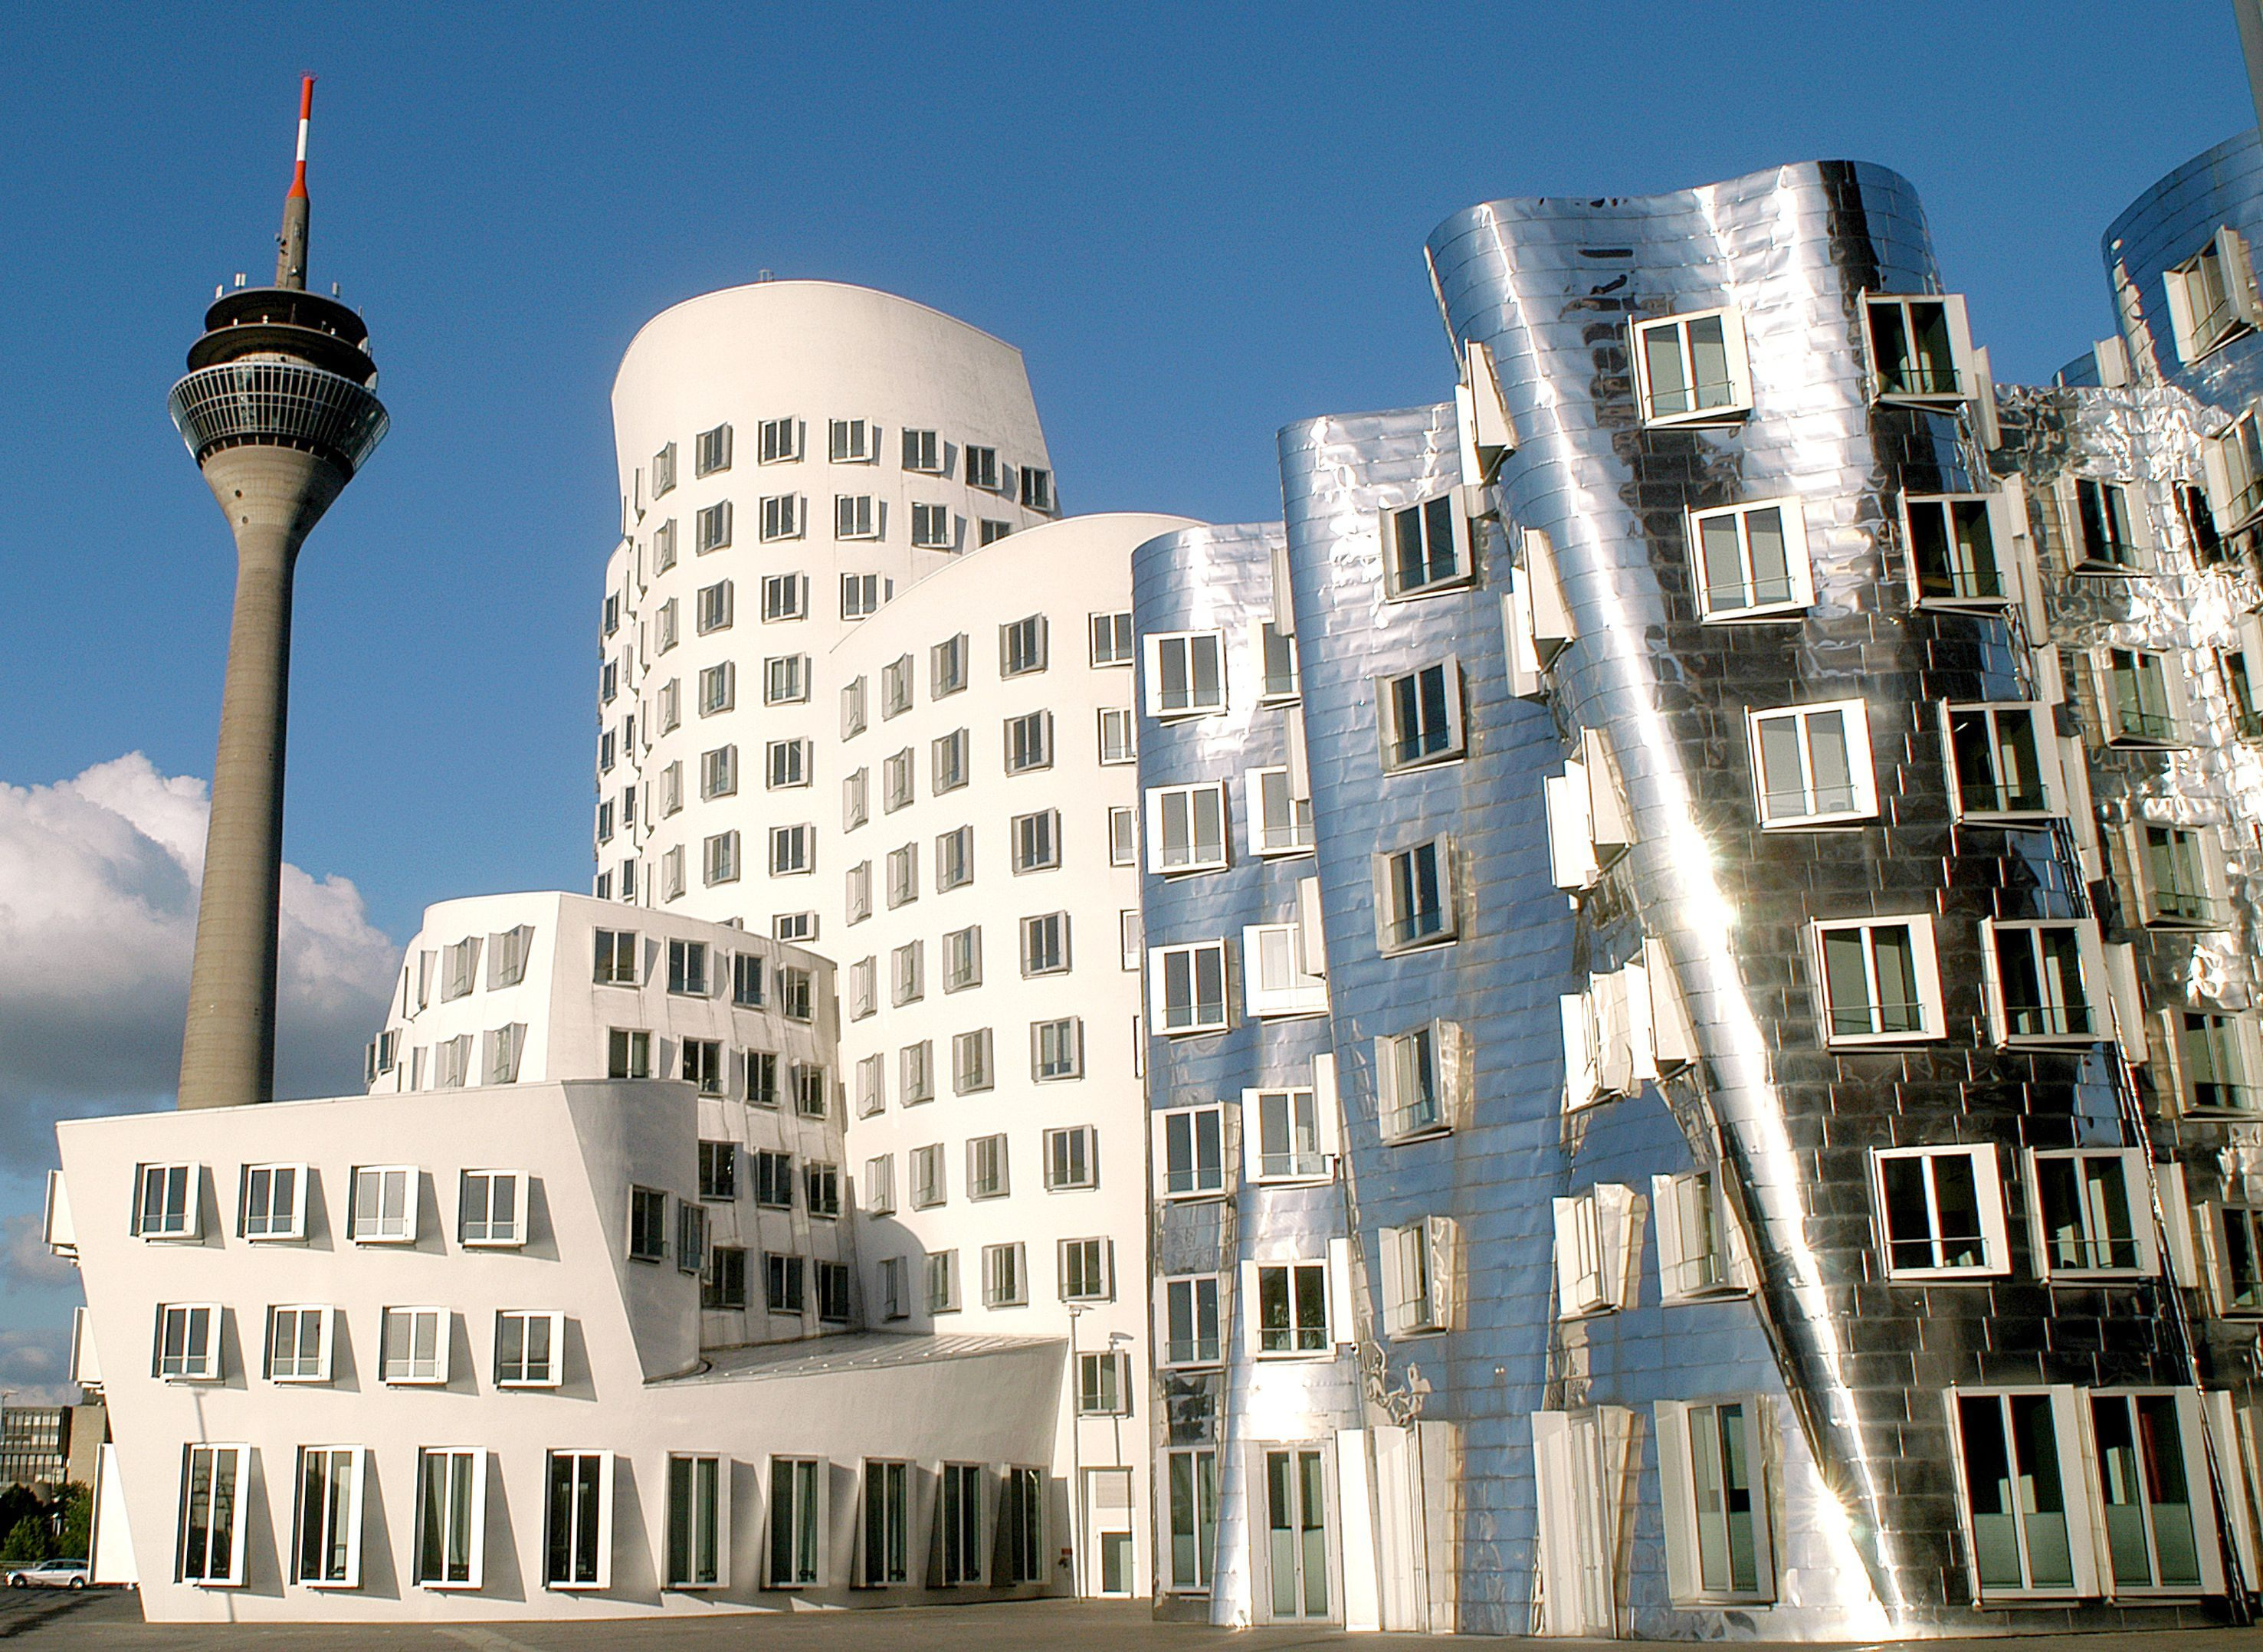 Lit 2 Places Moderne Joli the 10 Best Cities to Visit In Germany